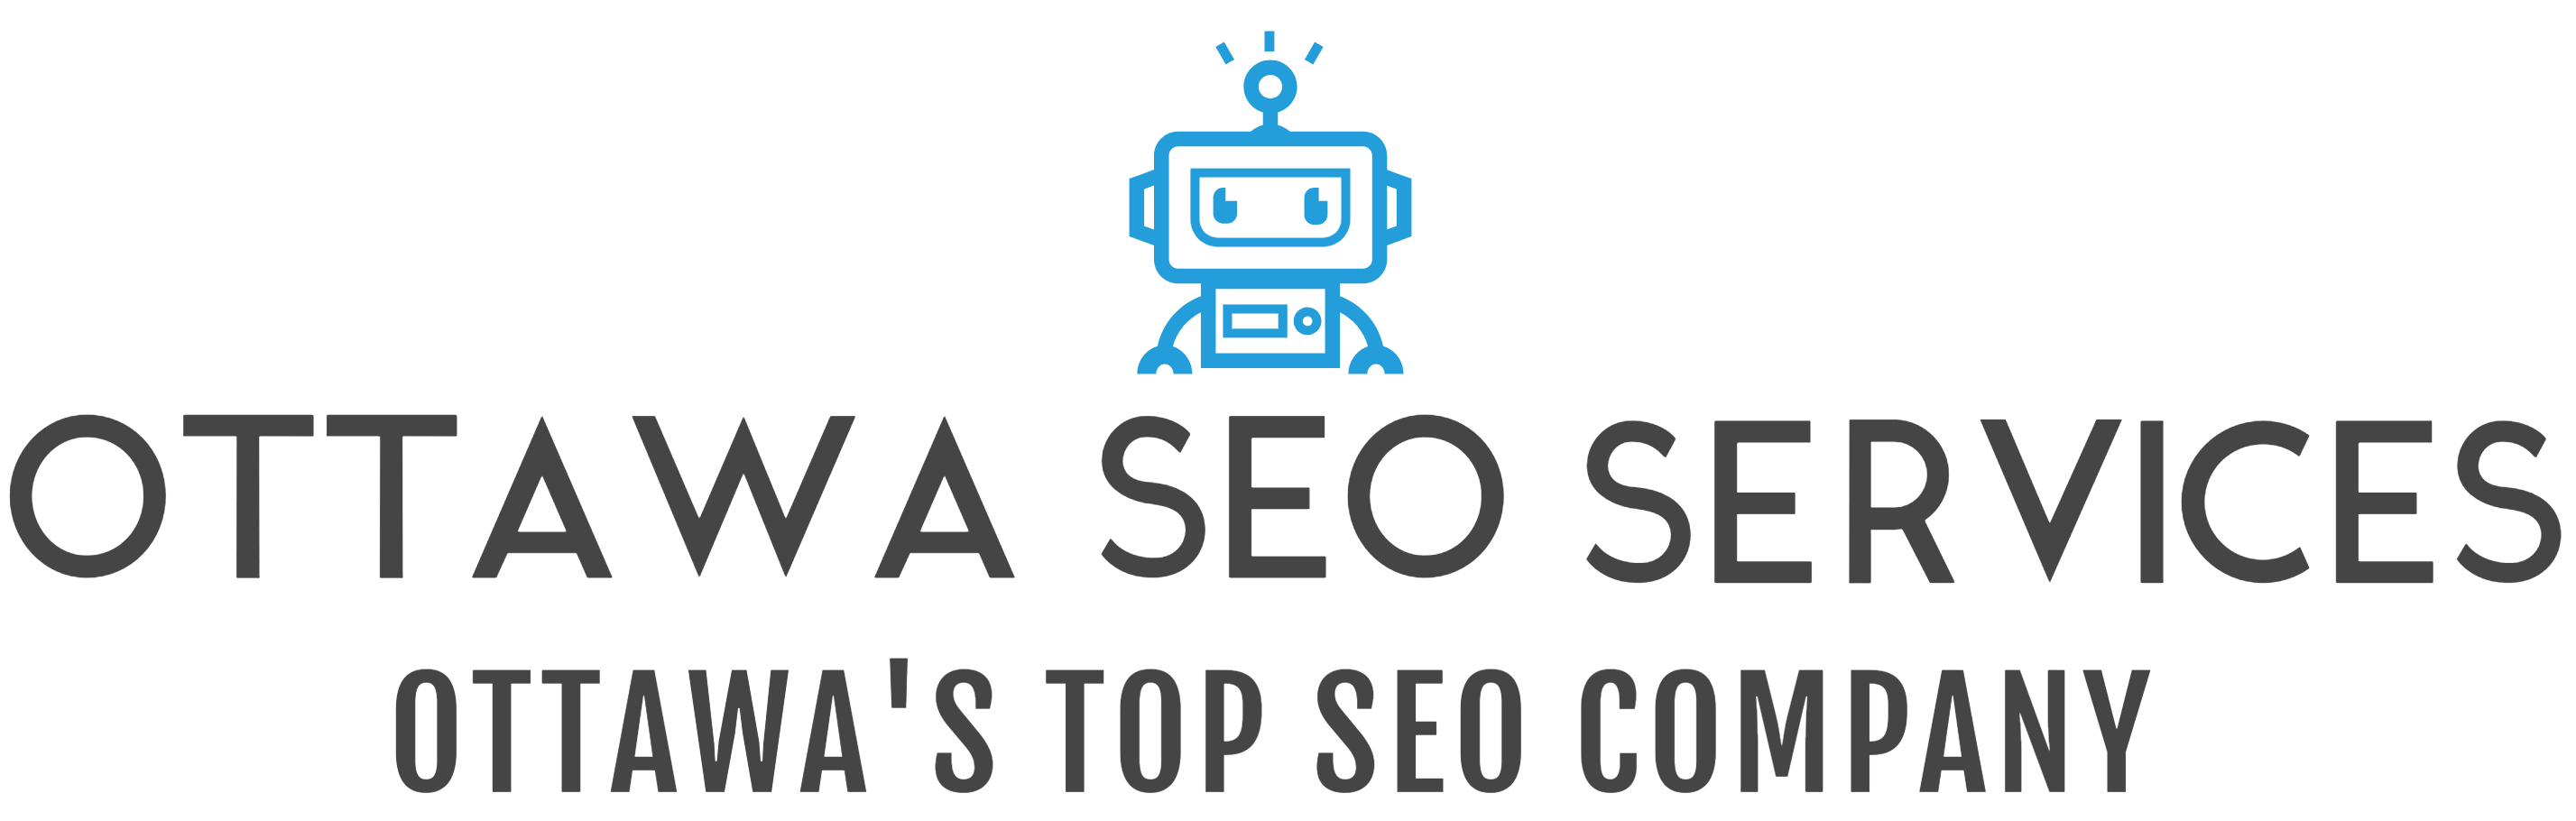 seo news Archives - Ottawas Top Rated SEO Company